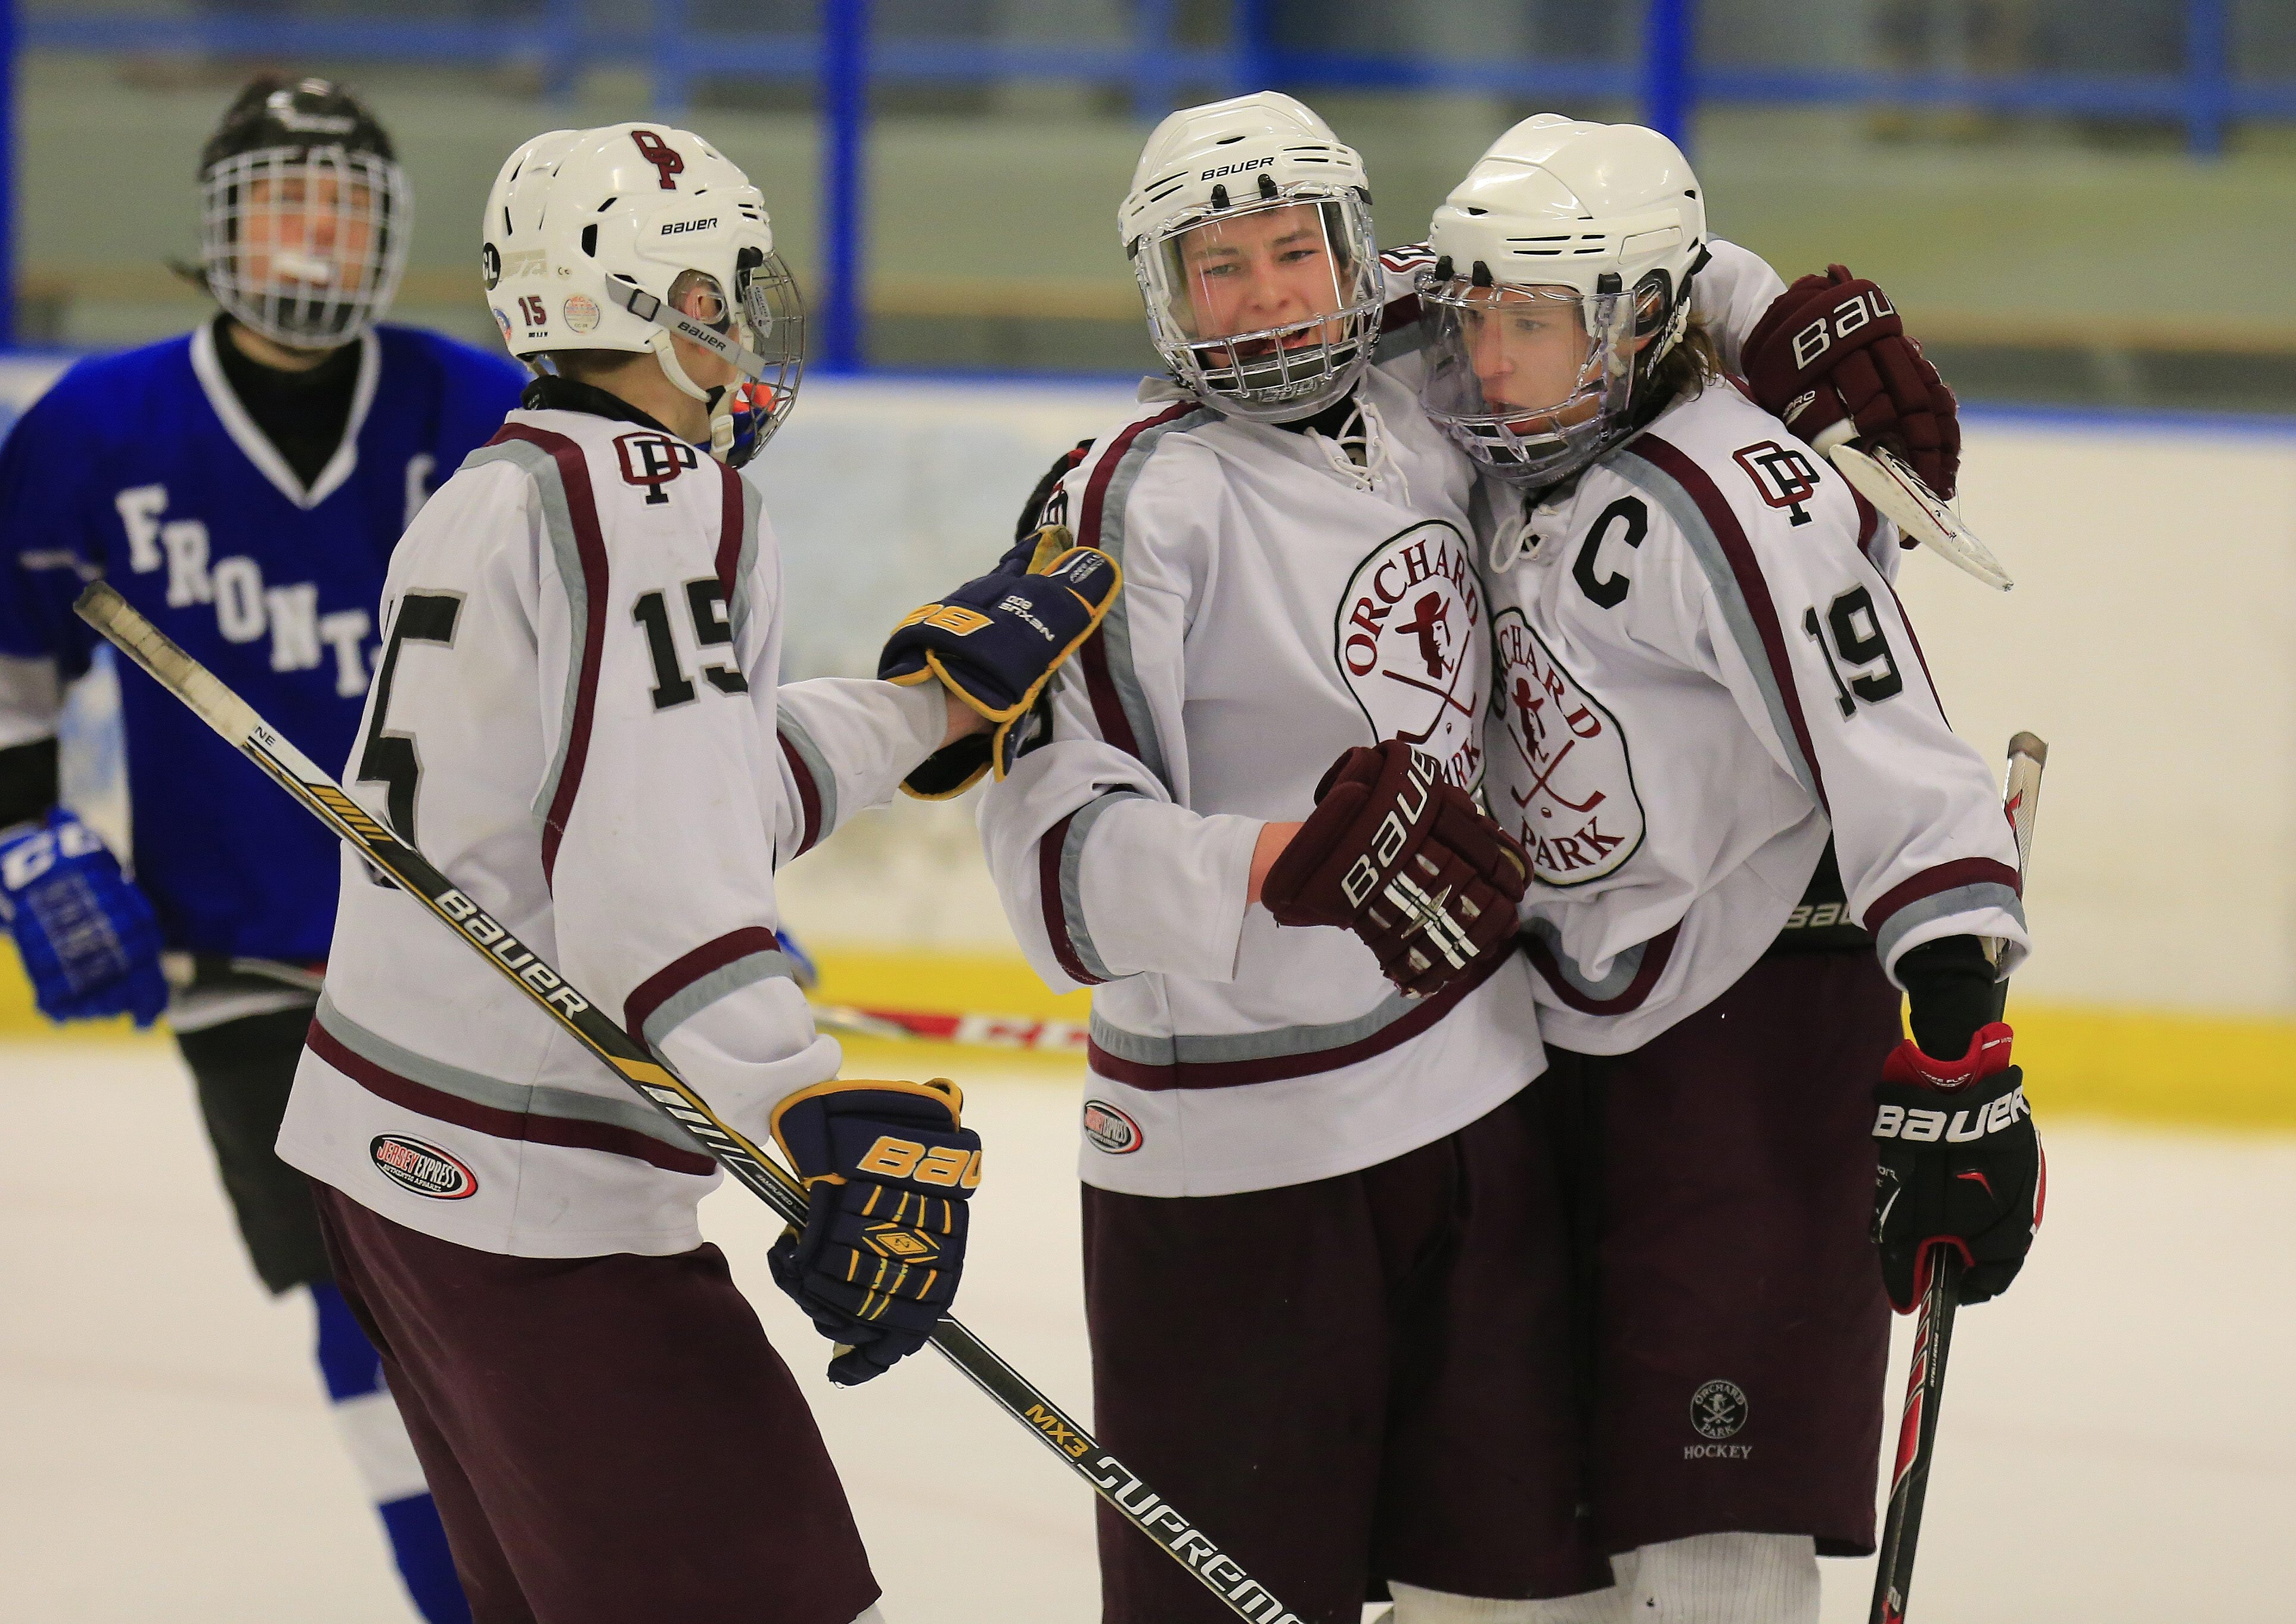 Orchard Park's  Jason Carey (15) and Mitchell Streety (3) congratulate Cole Schiffman (19) on his goal against Frontier during playoff action on Saturday.